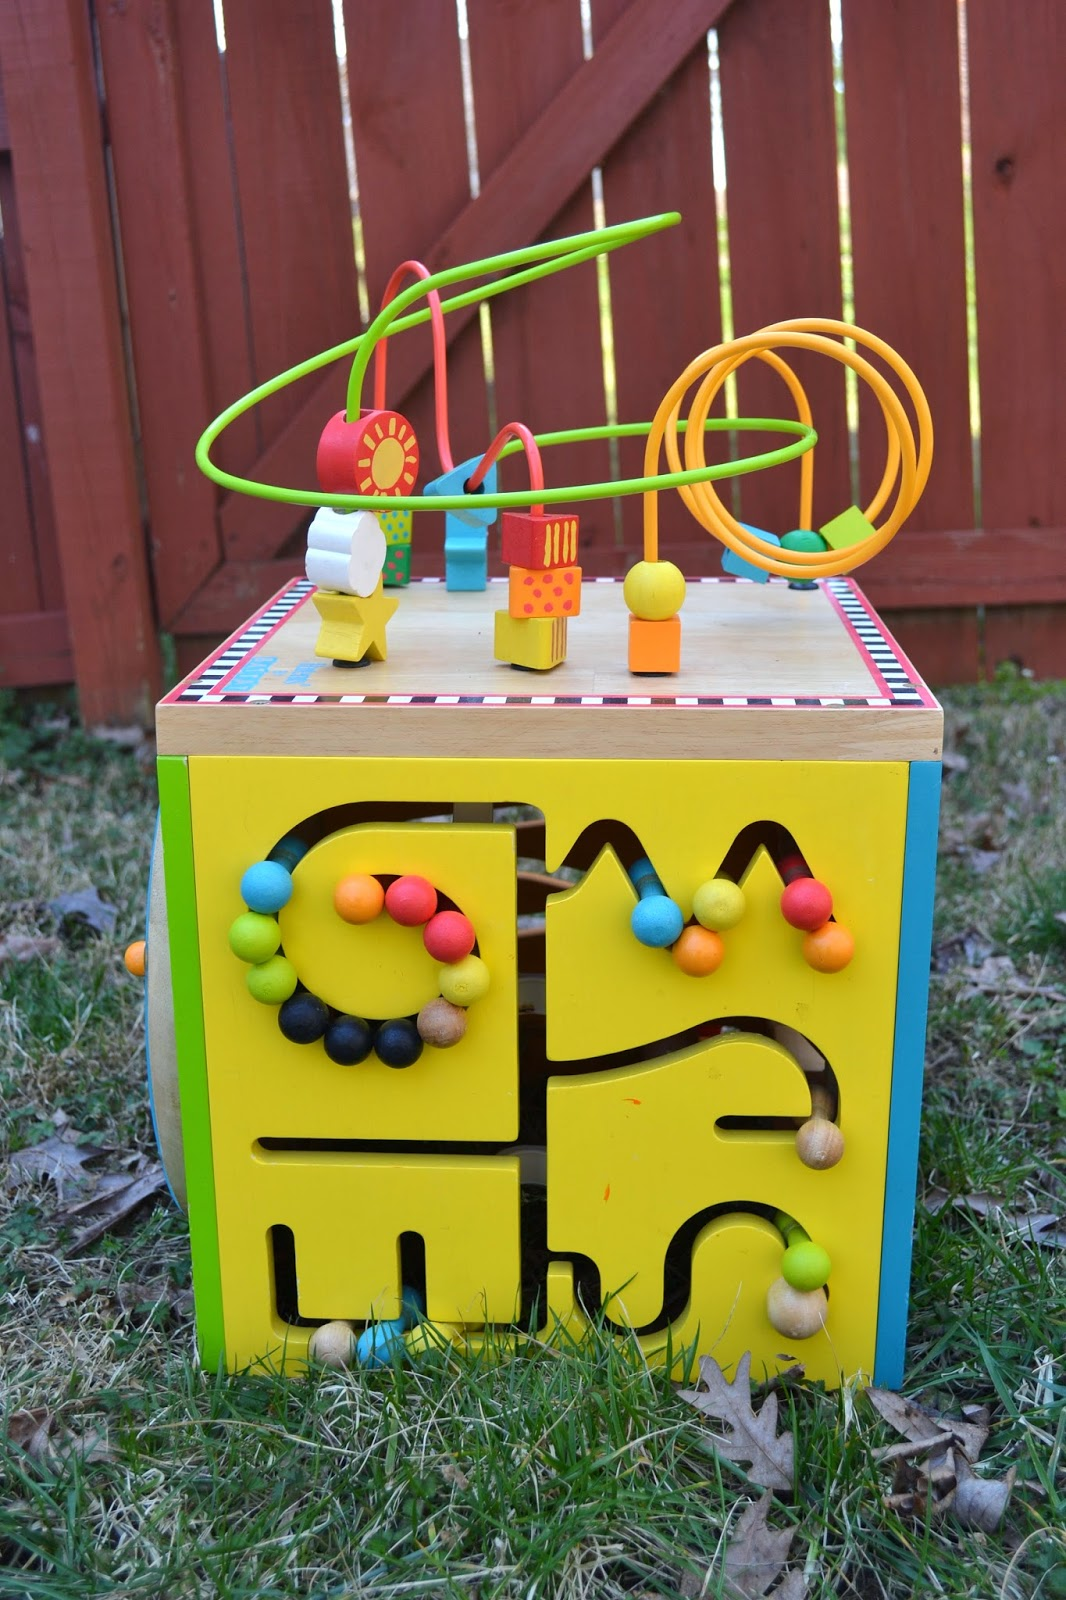 Baby and Kid Stuff For Sale: Wooden Roller Coaster Bead Maze - SOLD